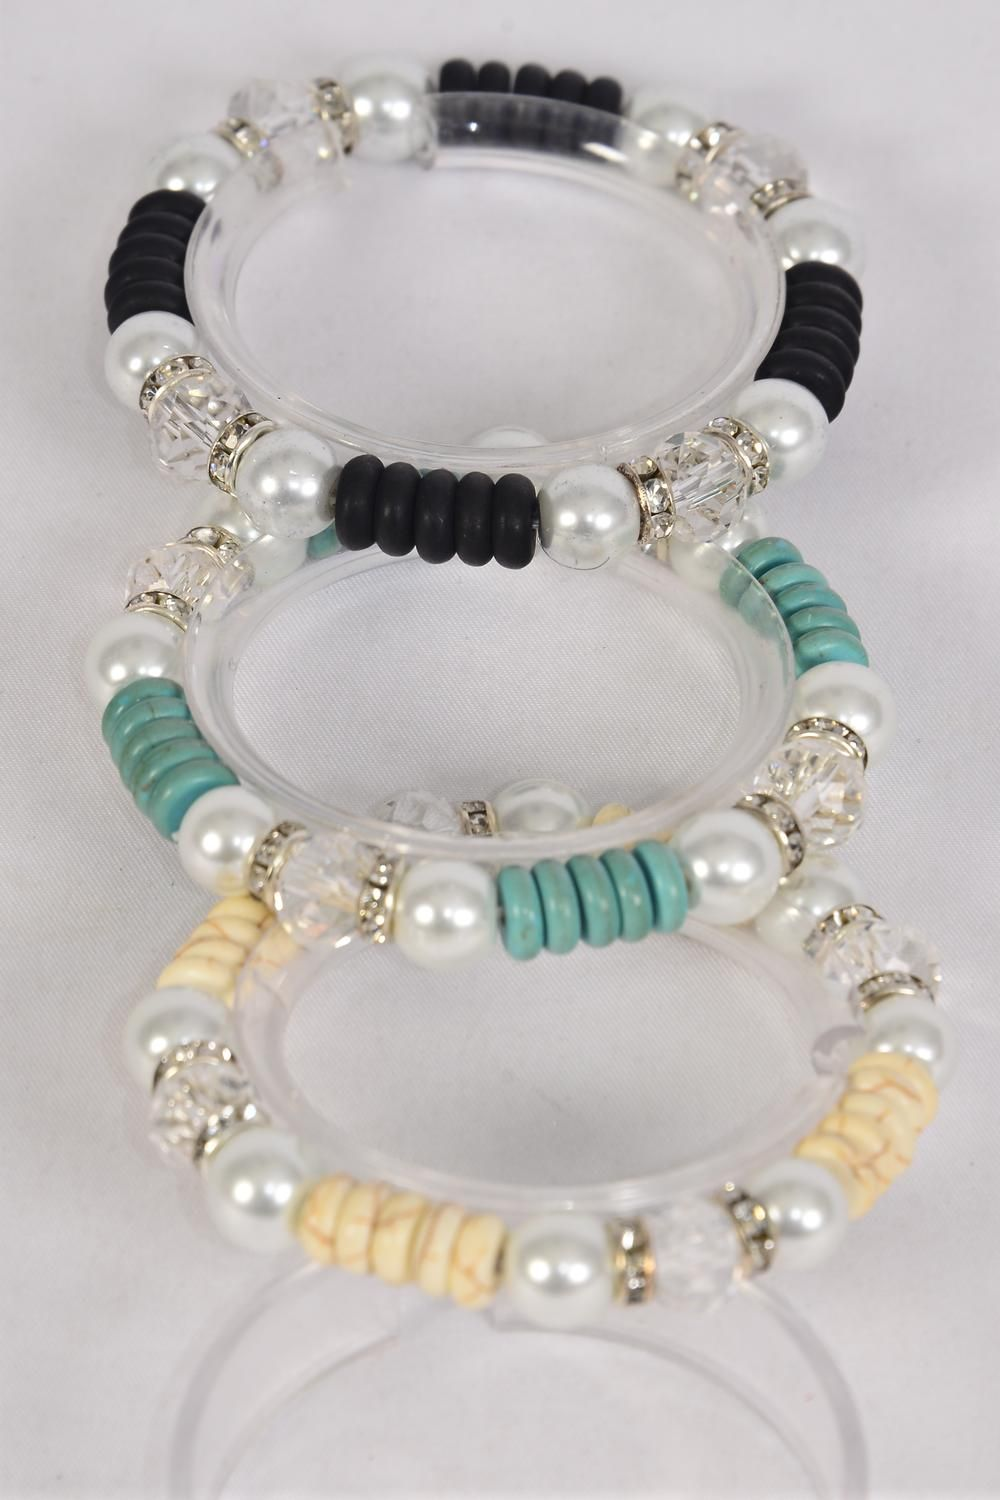 Bracelet 10 mm Glass Pearl & Semiprecious Stone Mix Stretch/DZ **Stretch** 4 Black,4 Ivory,4 Turquoise,3 Color Asst,Hang Tag & Opp Bag & UPC Code -